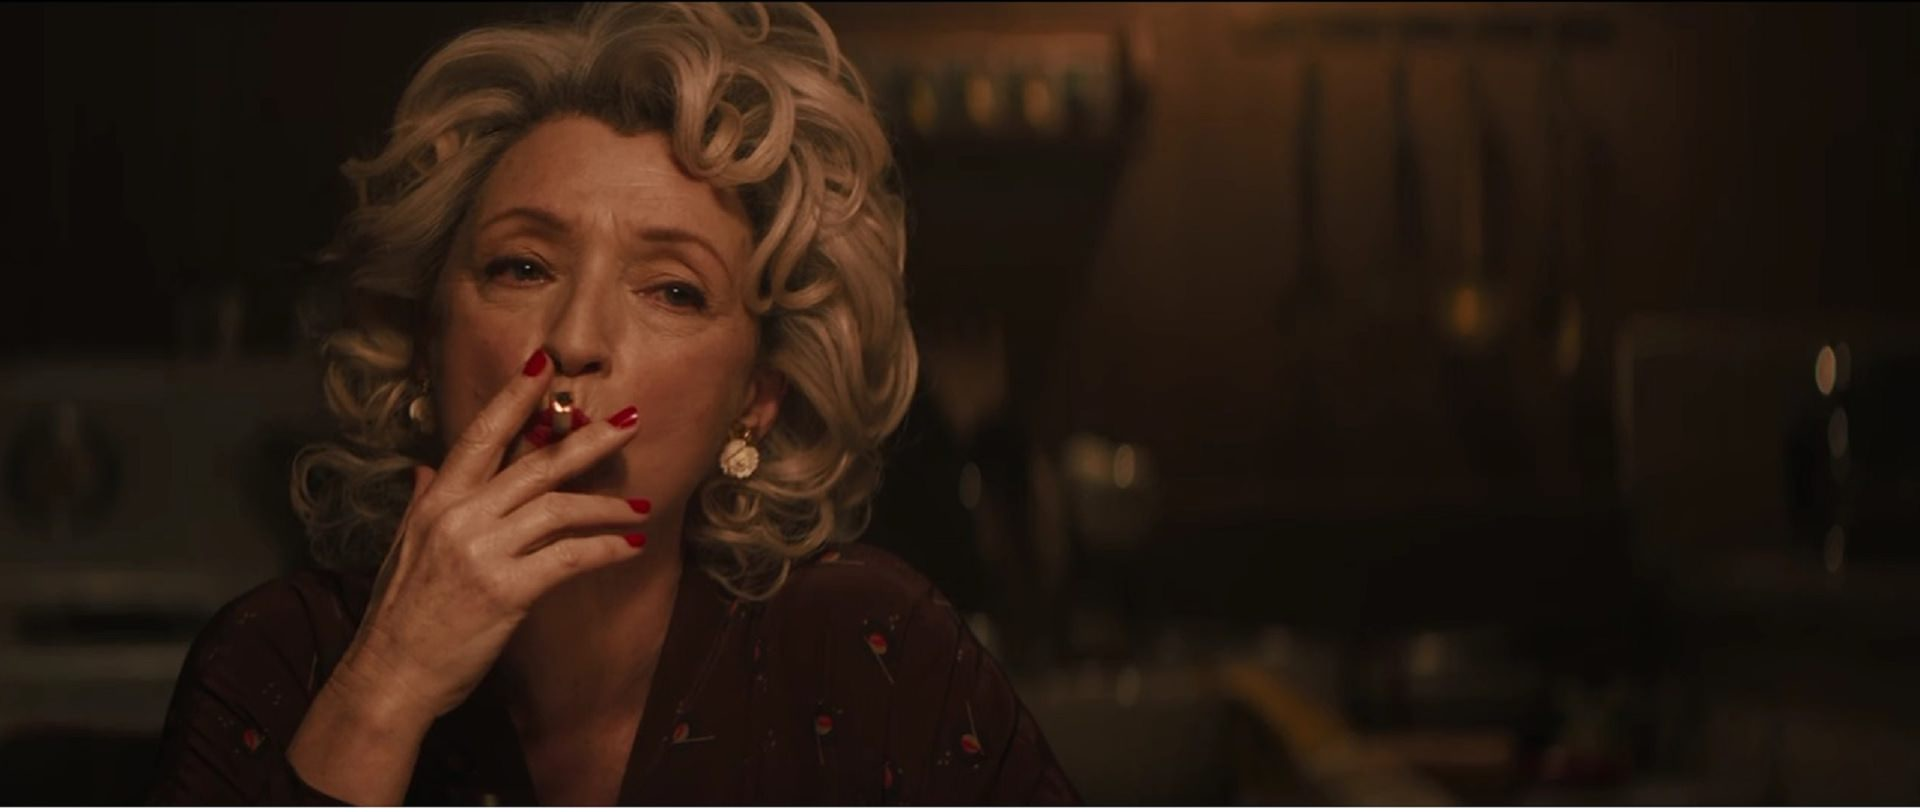 Let Leslie Manville smoking in the movie